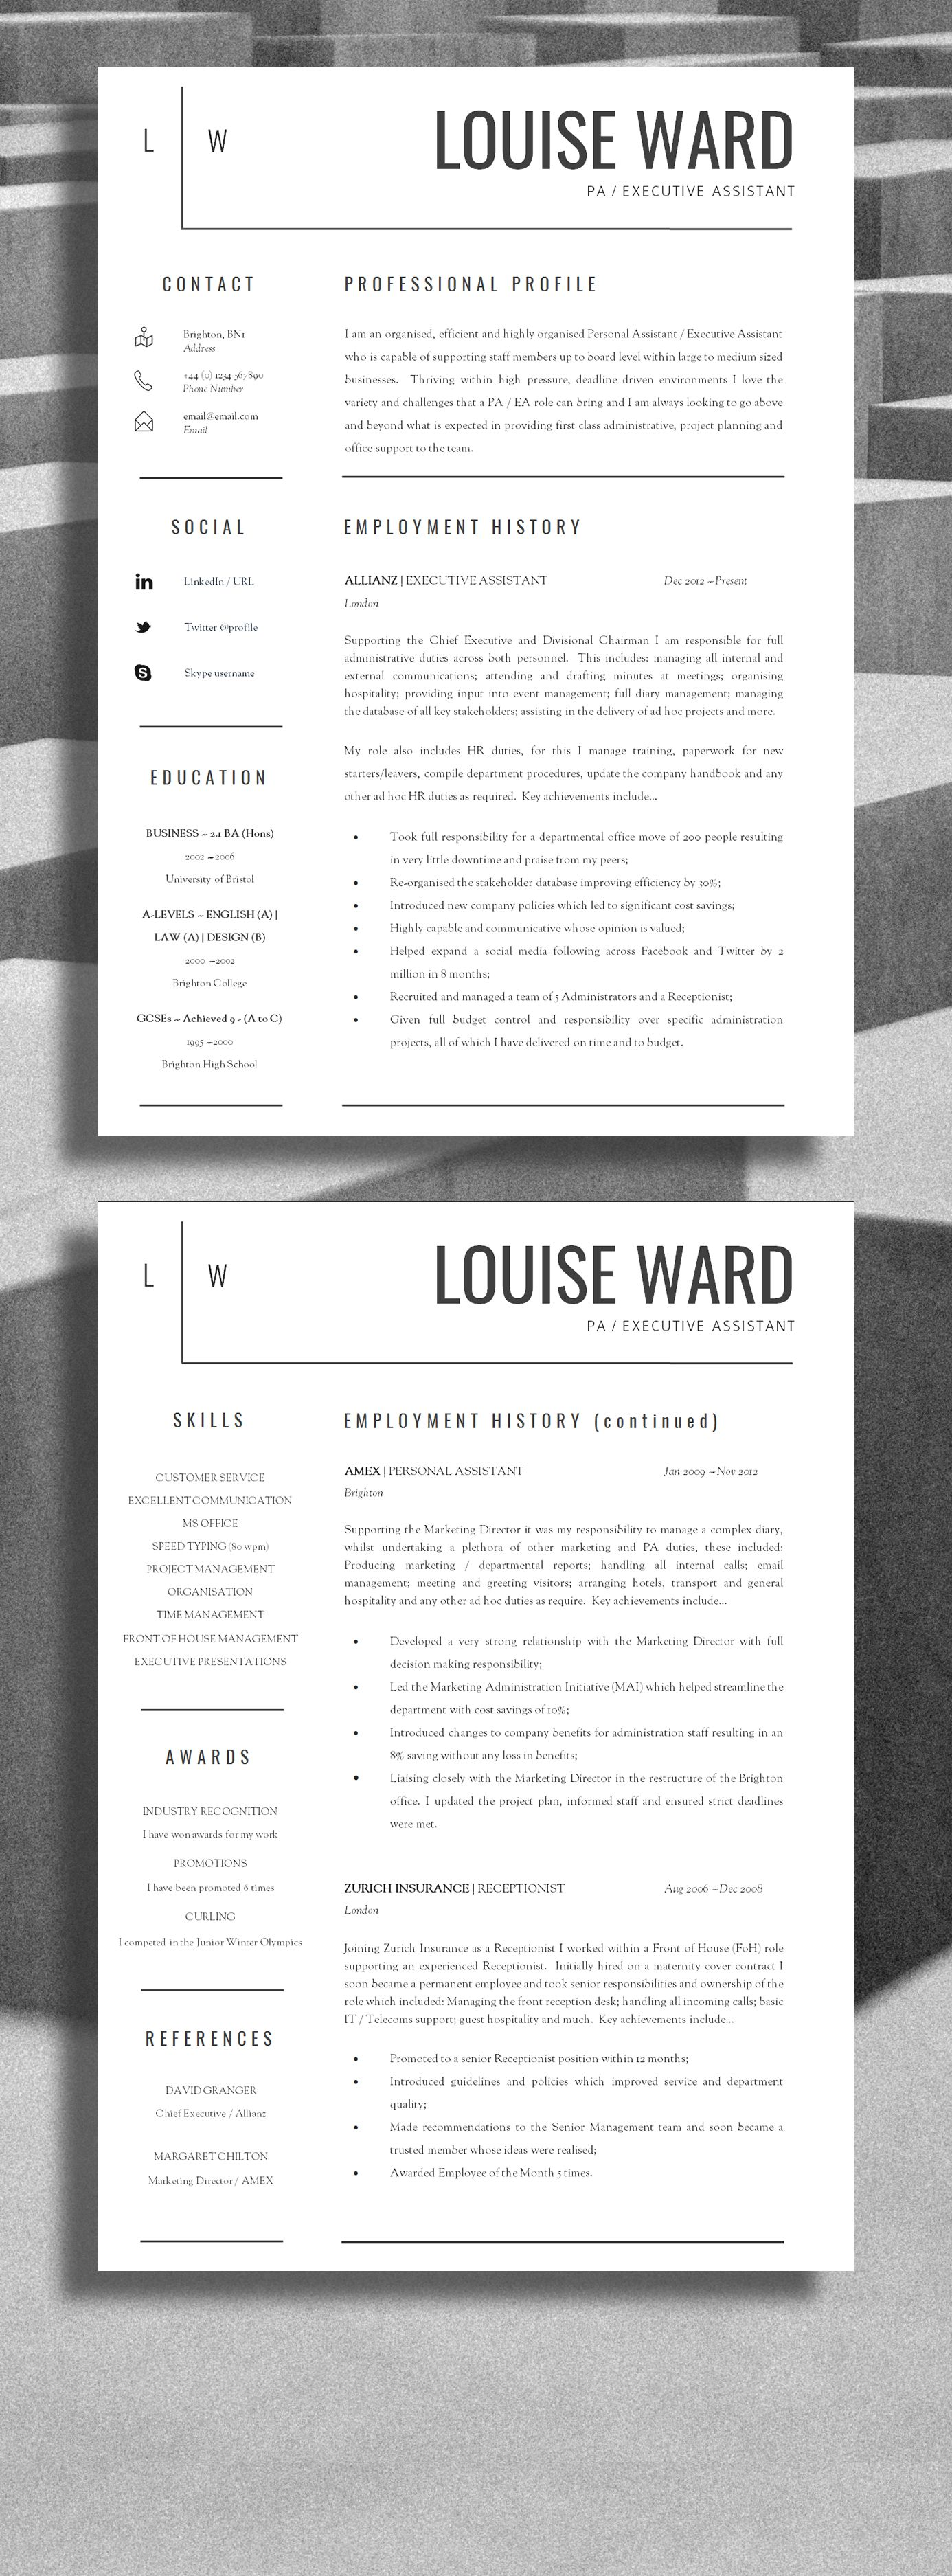 modern resume template cv template cover letter professional resume template cv template cover letter resume advice for ms word instant digital mac or pc aldgate resume template